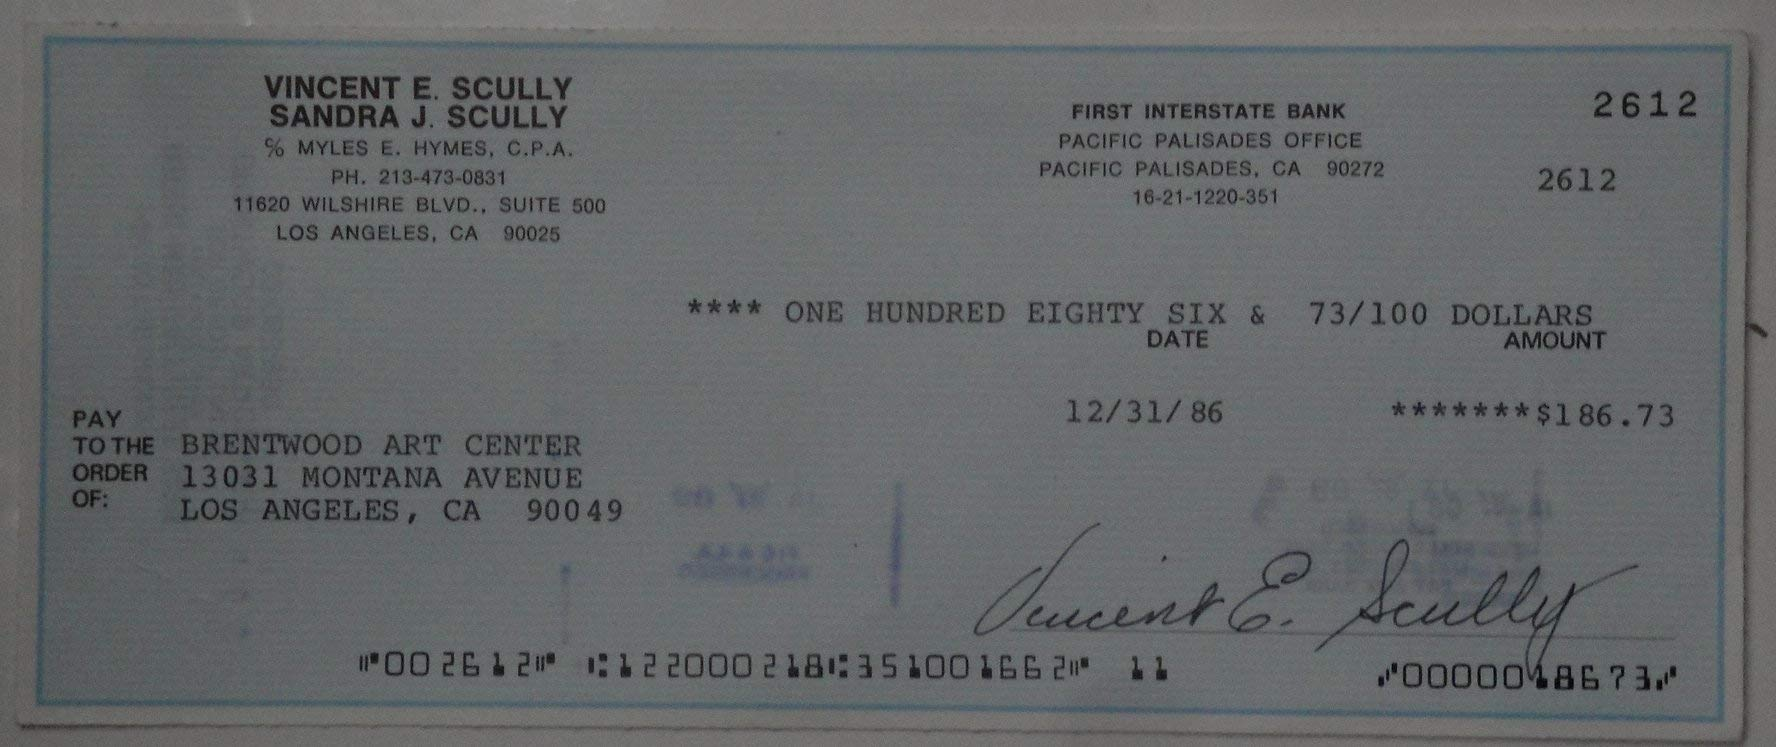 Vin Scully Hand Signed Autographed Personal Check Los Angeles Dodgers w/COA